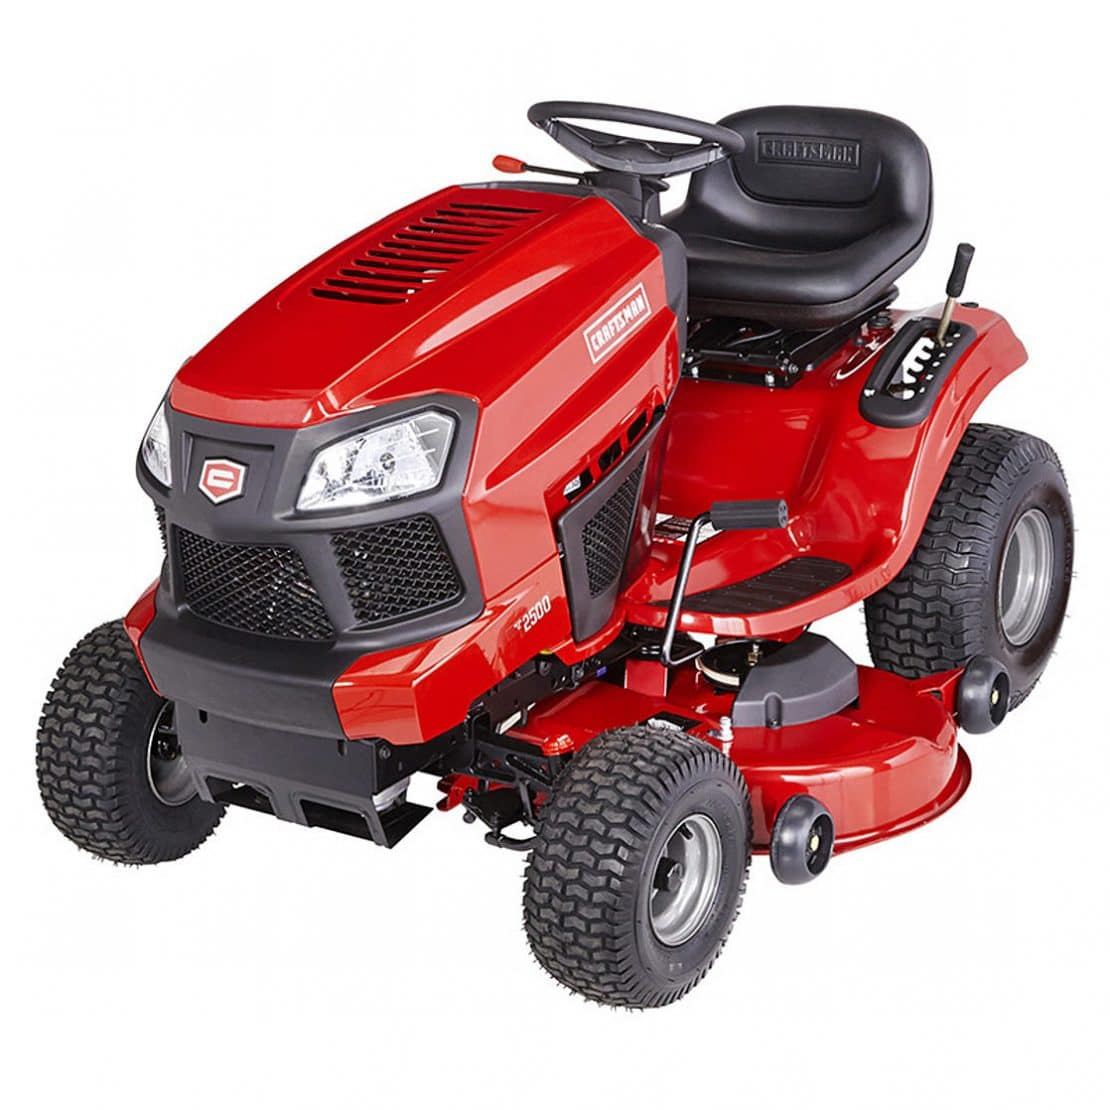 Craftsman 2000 Series Mower : Craftsman yard tractor line up one now with power